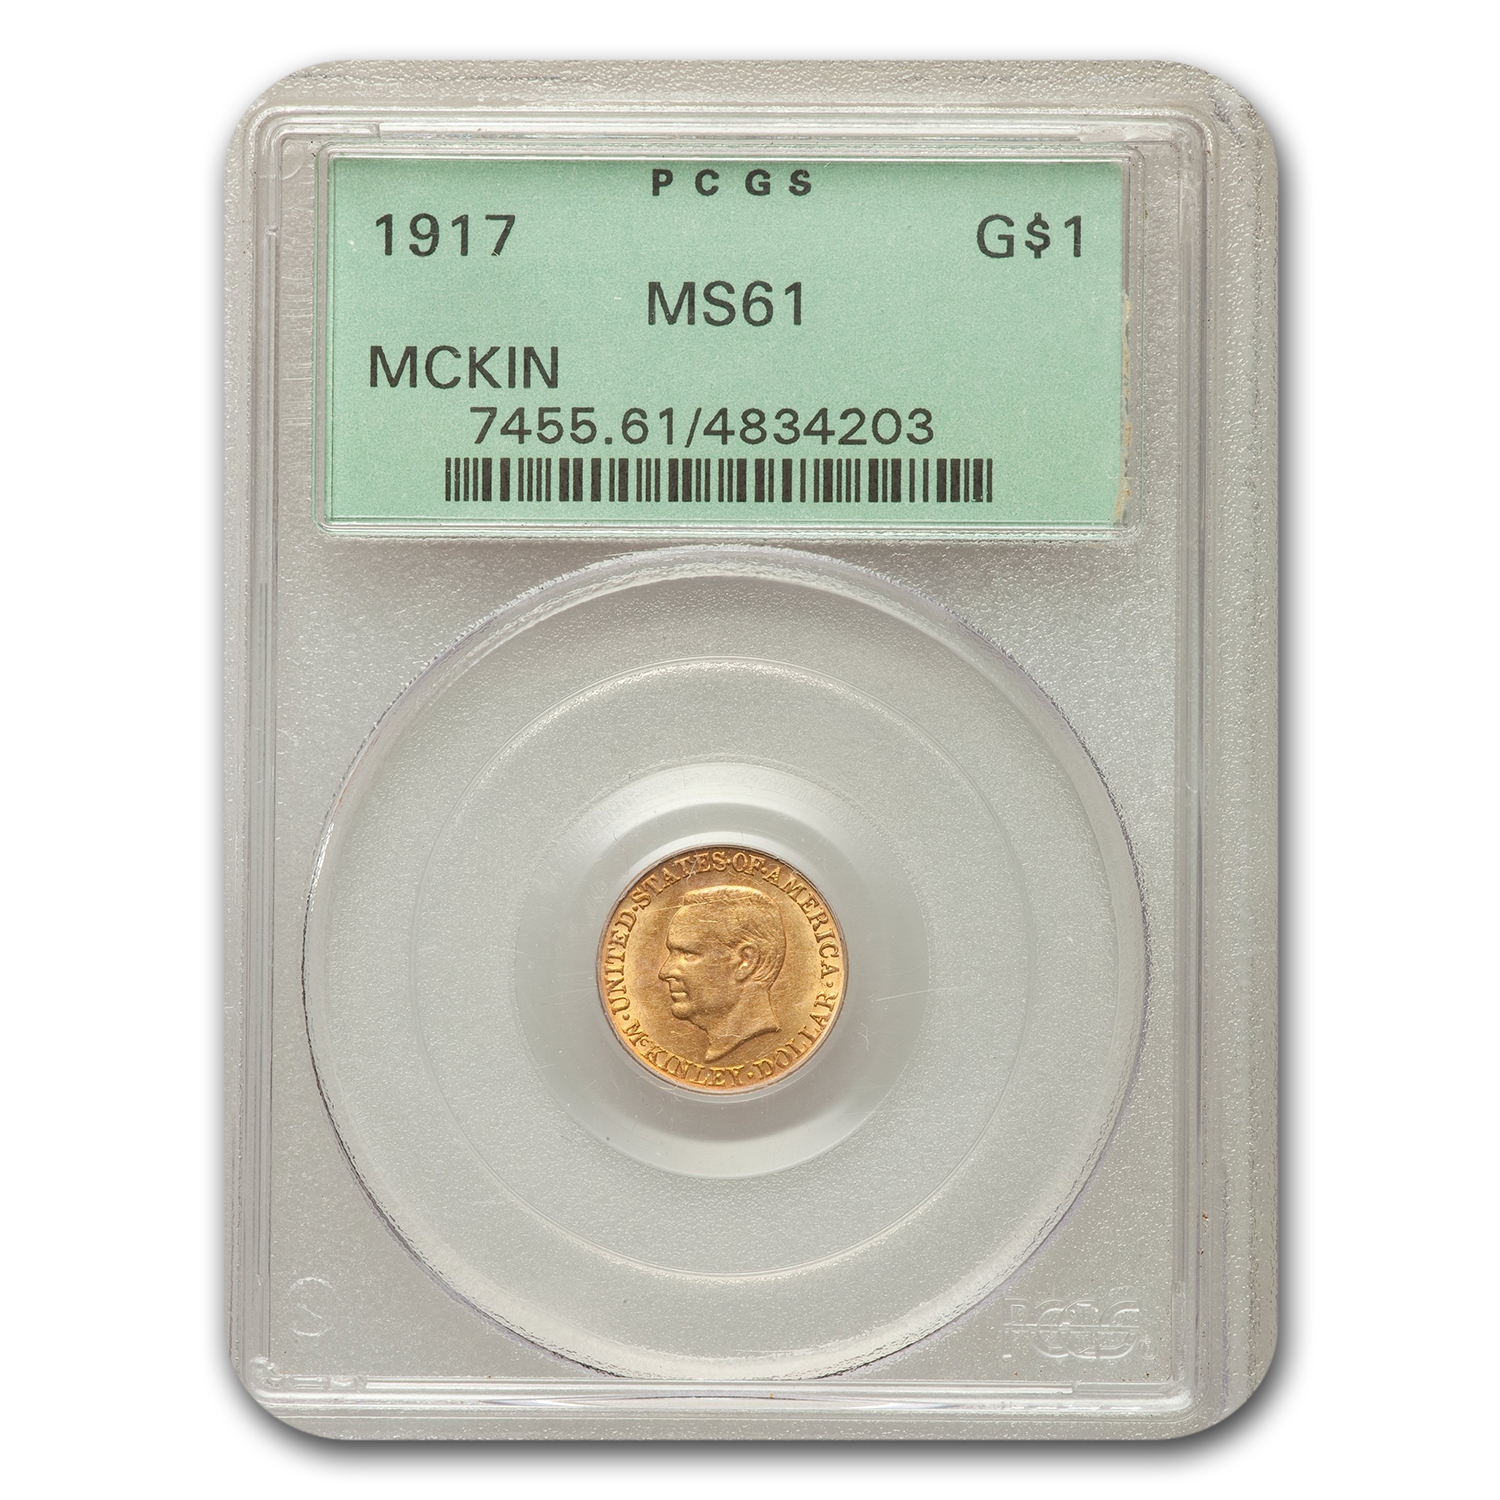 1917 Gold $1.00 McKinley MS-61 PCGS